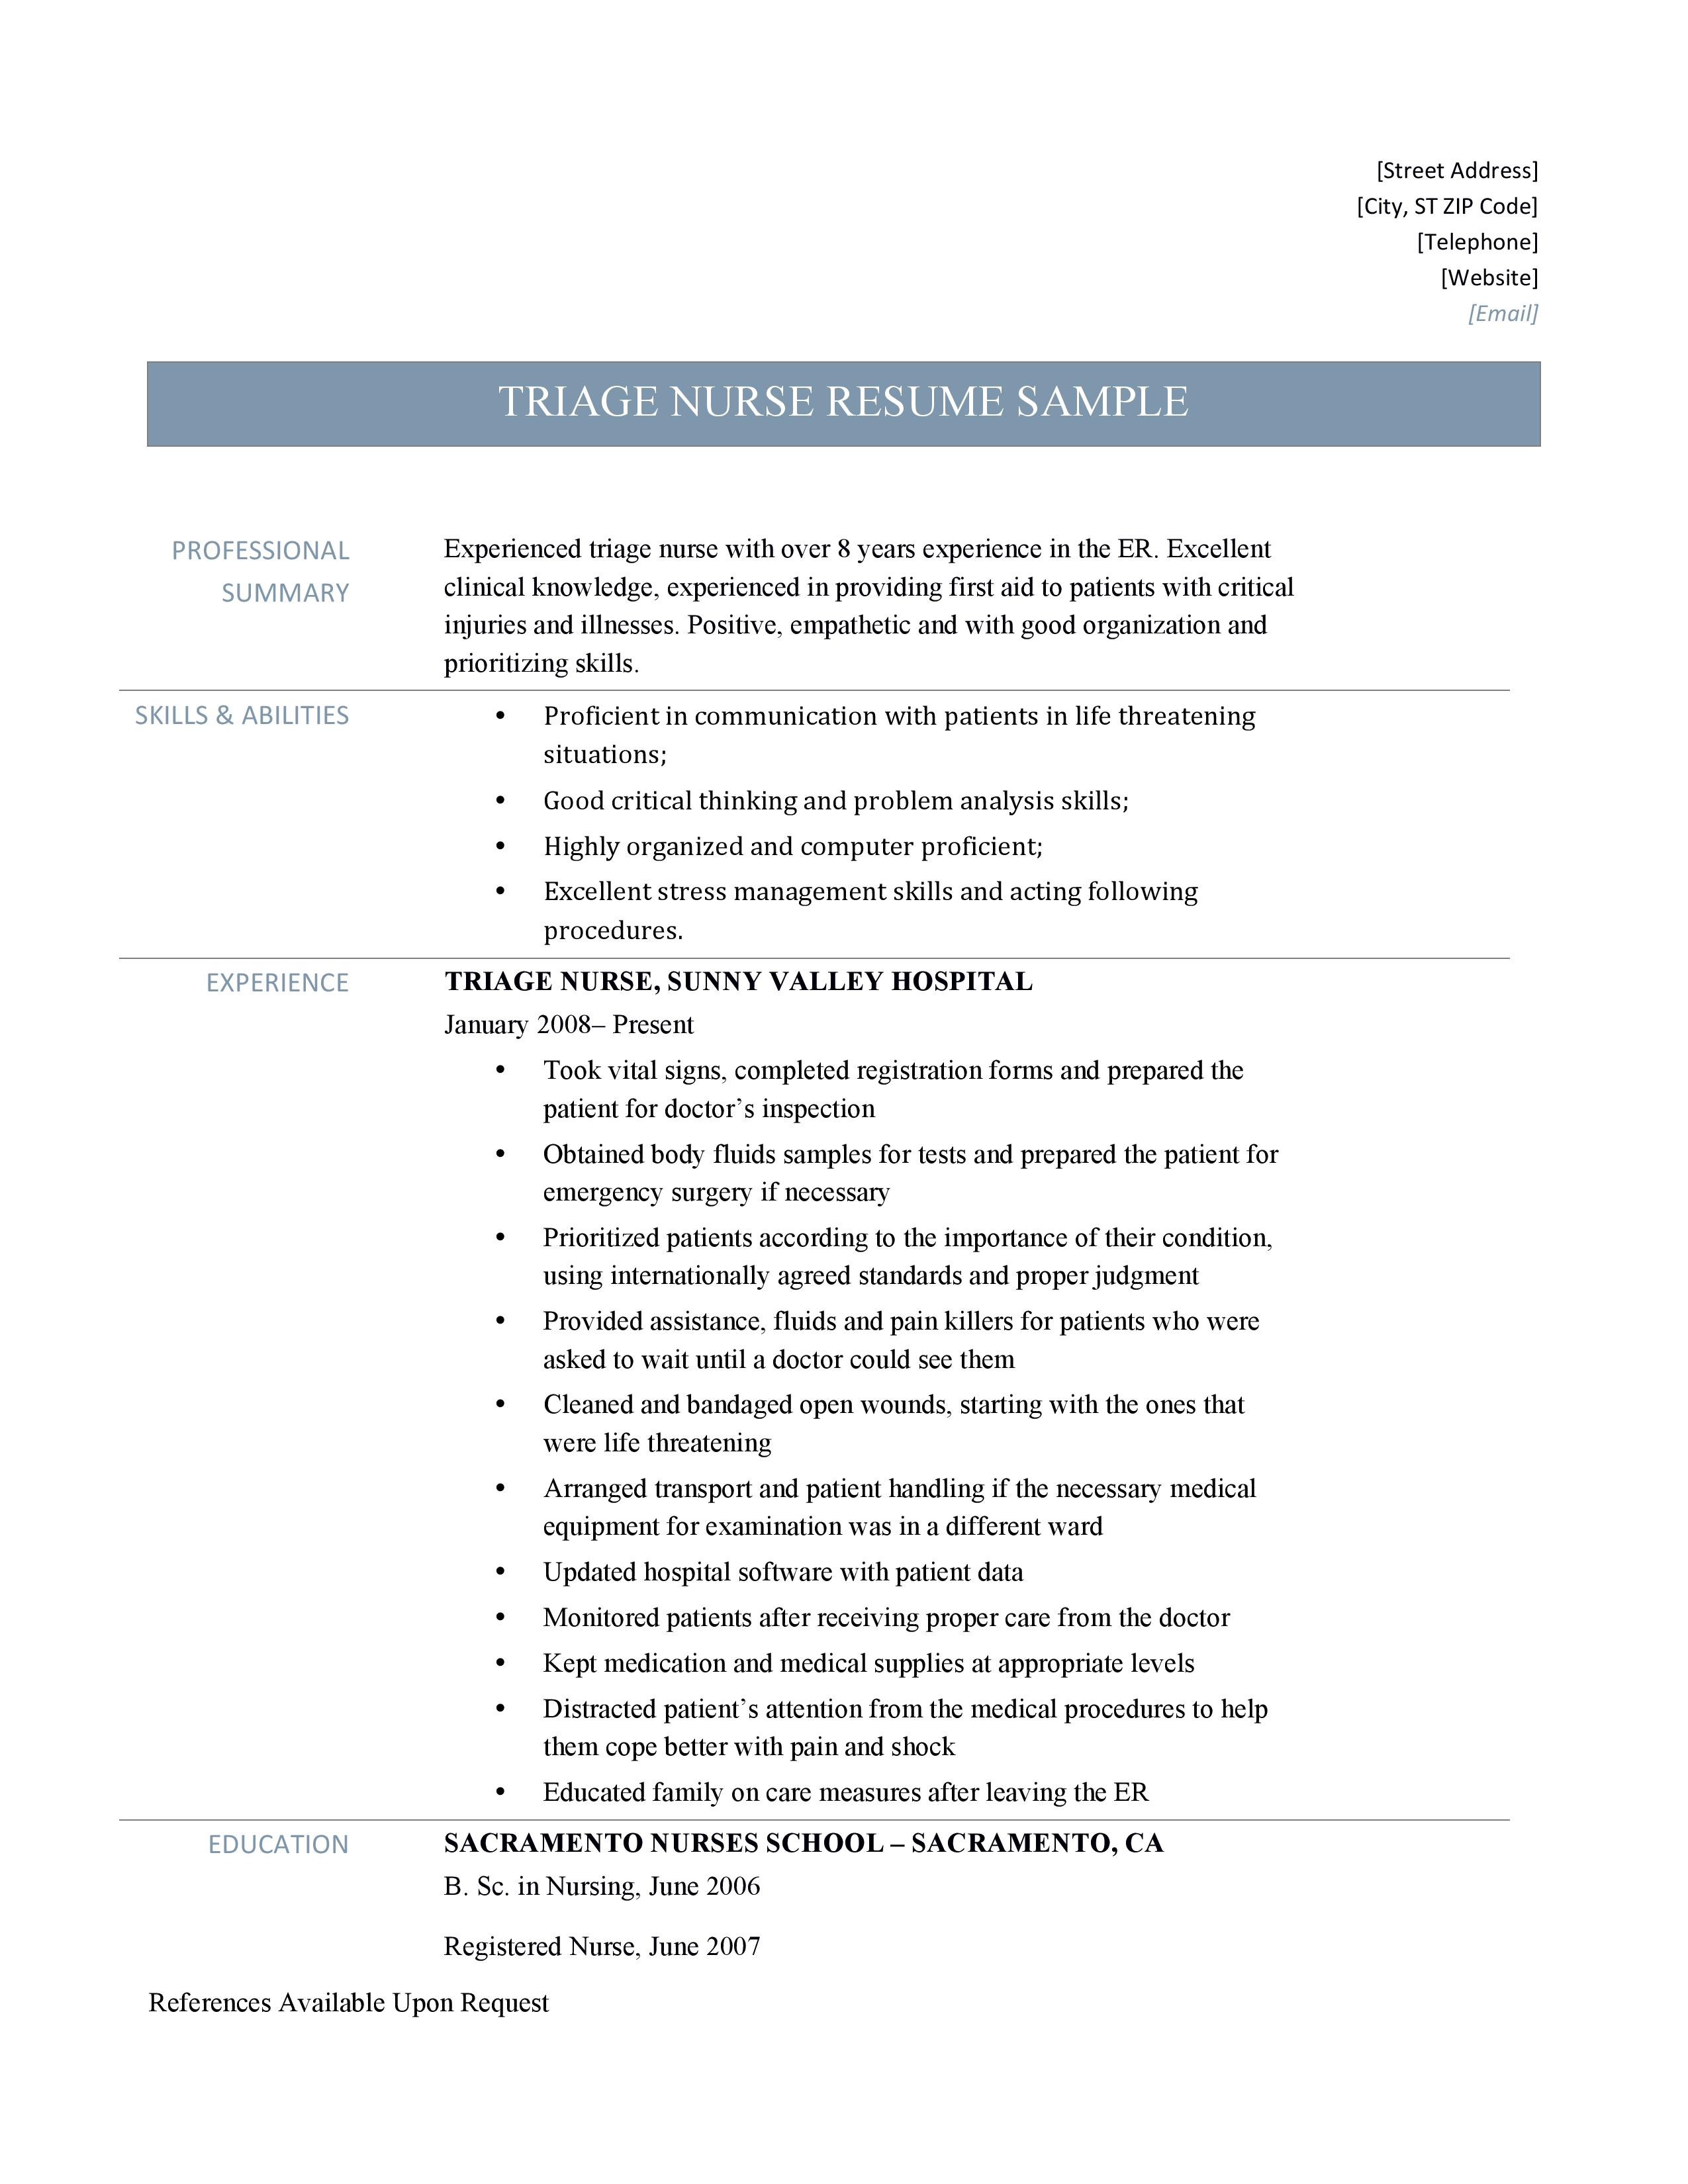 Triage Nurse Resume Sample And Job Description By Online Resume